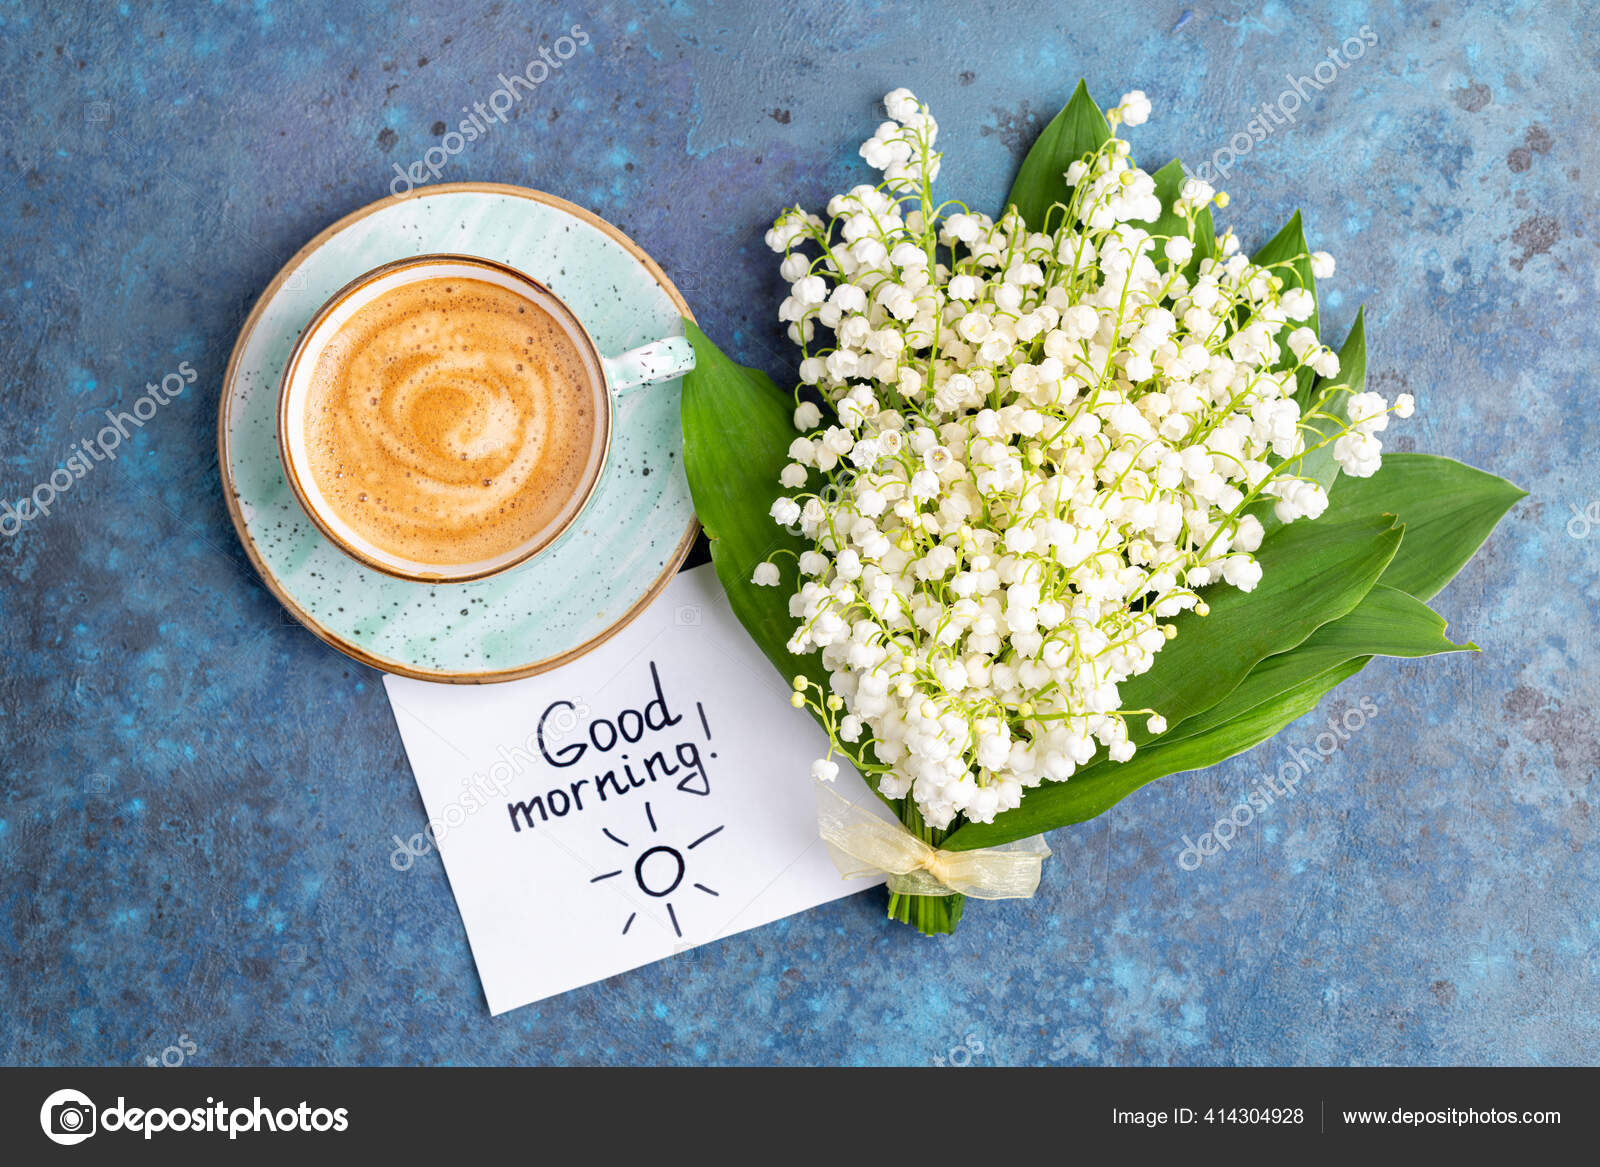 Notes Good Morning Coffee Mug Bouquet Flowers Lily Valley Blue Stock Photo C Lanasweet 414304928